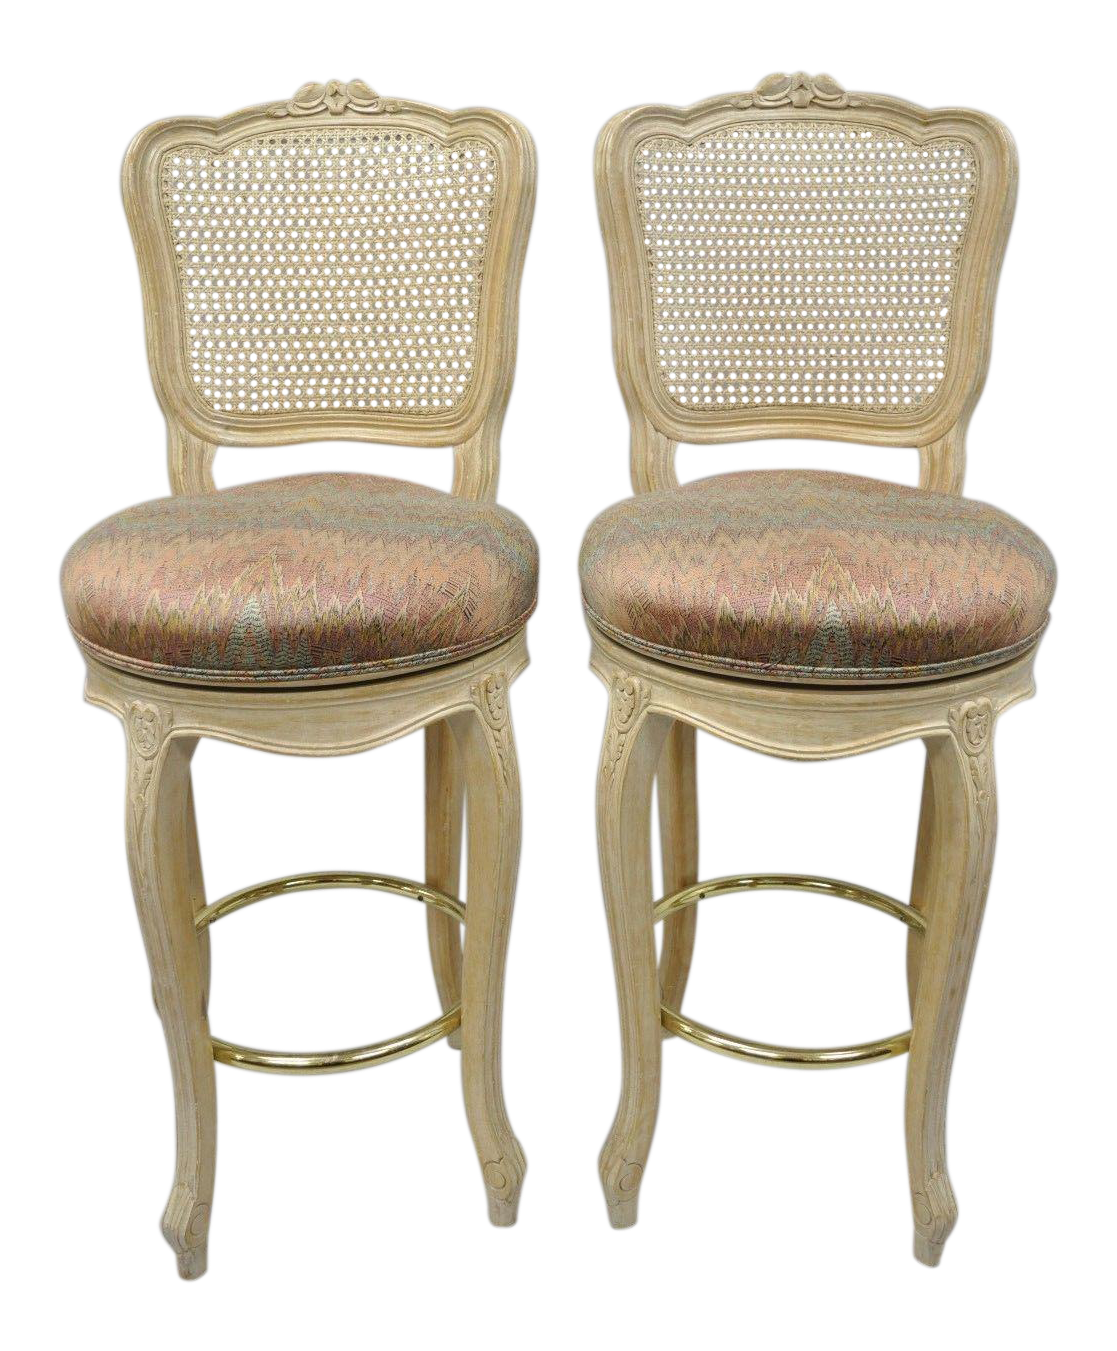 Vintage French Country Louis Xv Style Cane Back Swivel Bar Stools A Pair Chairish